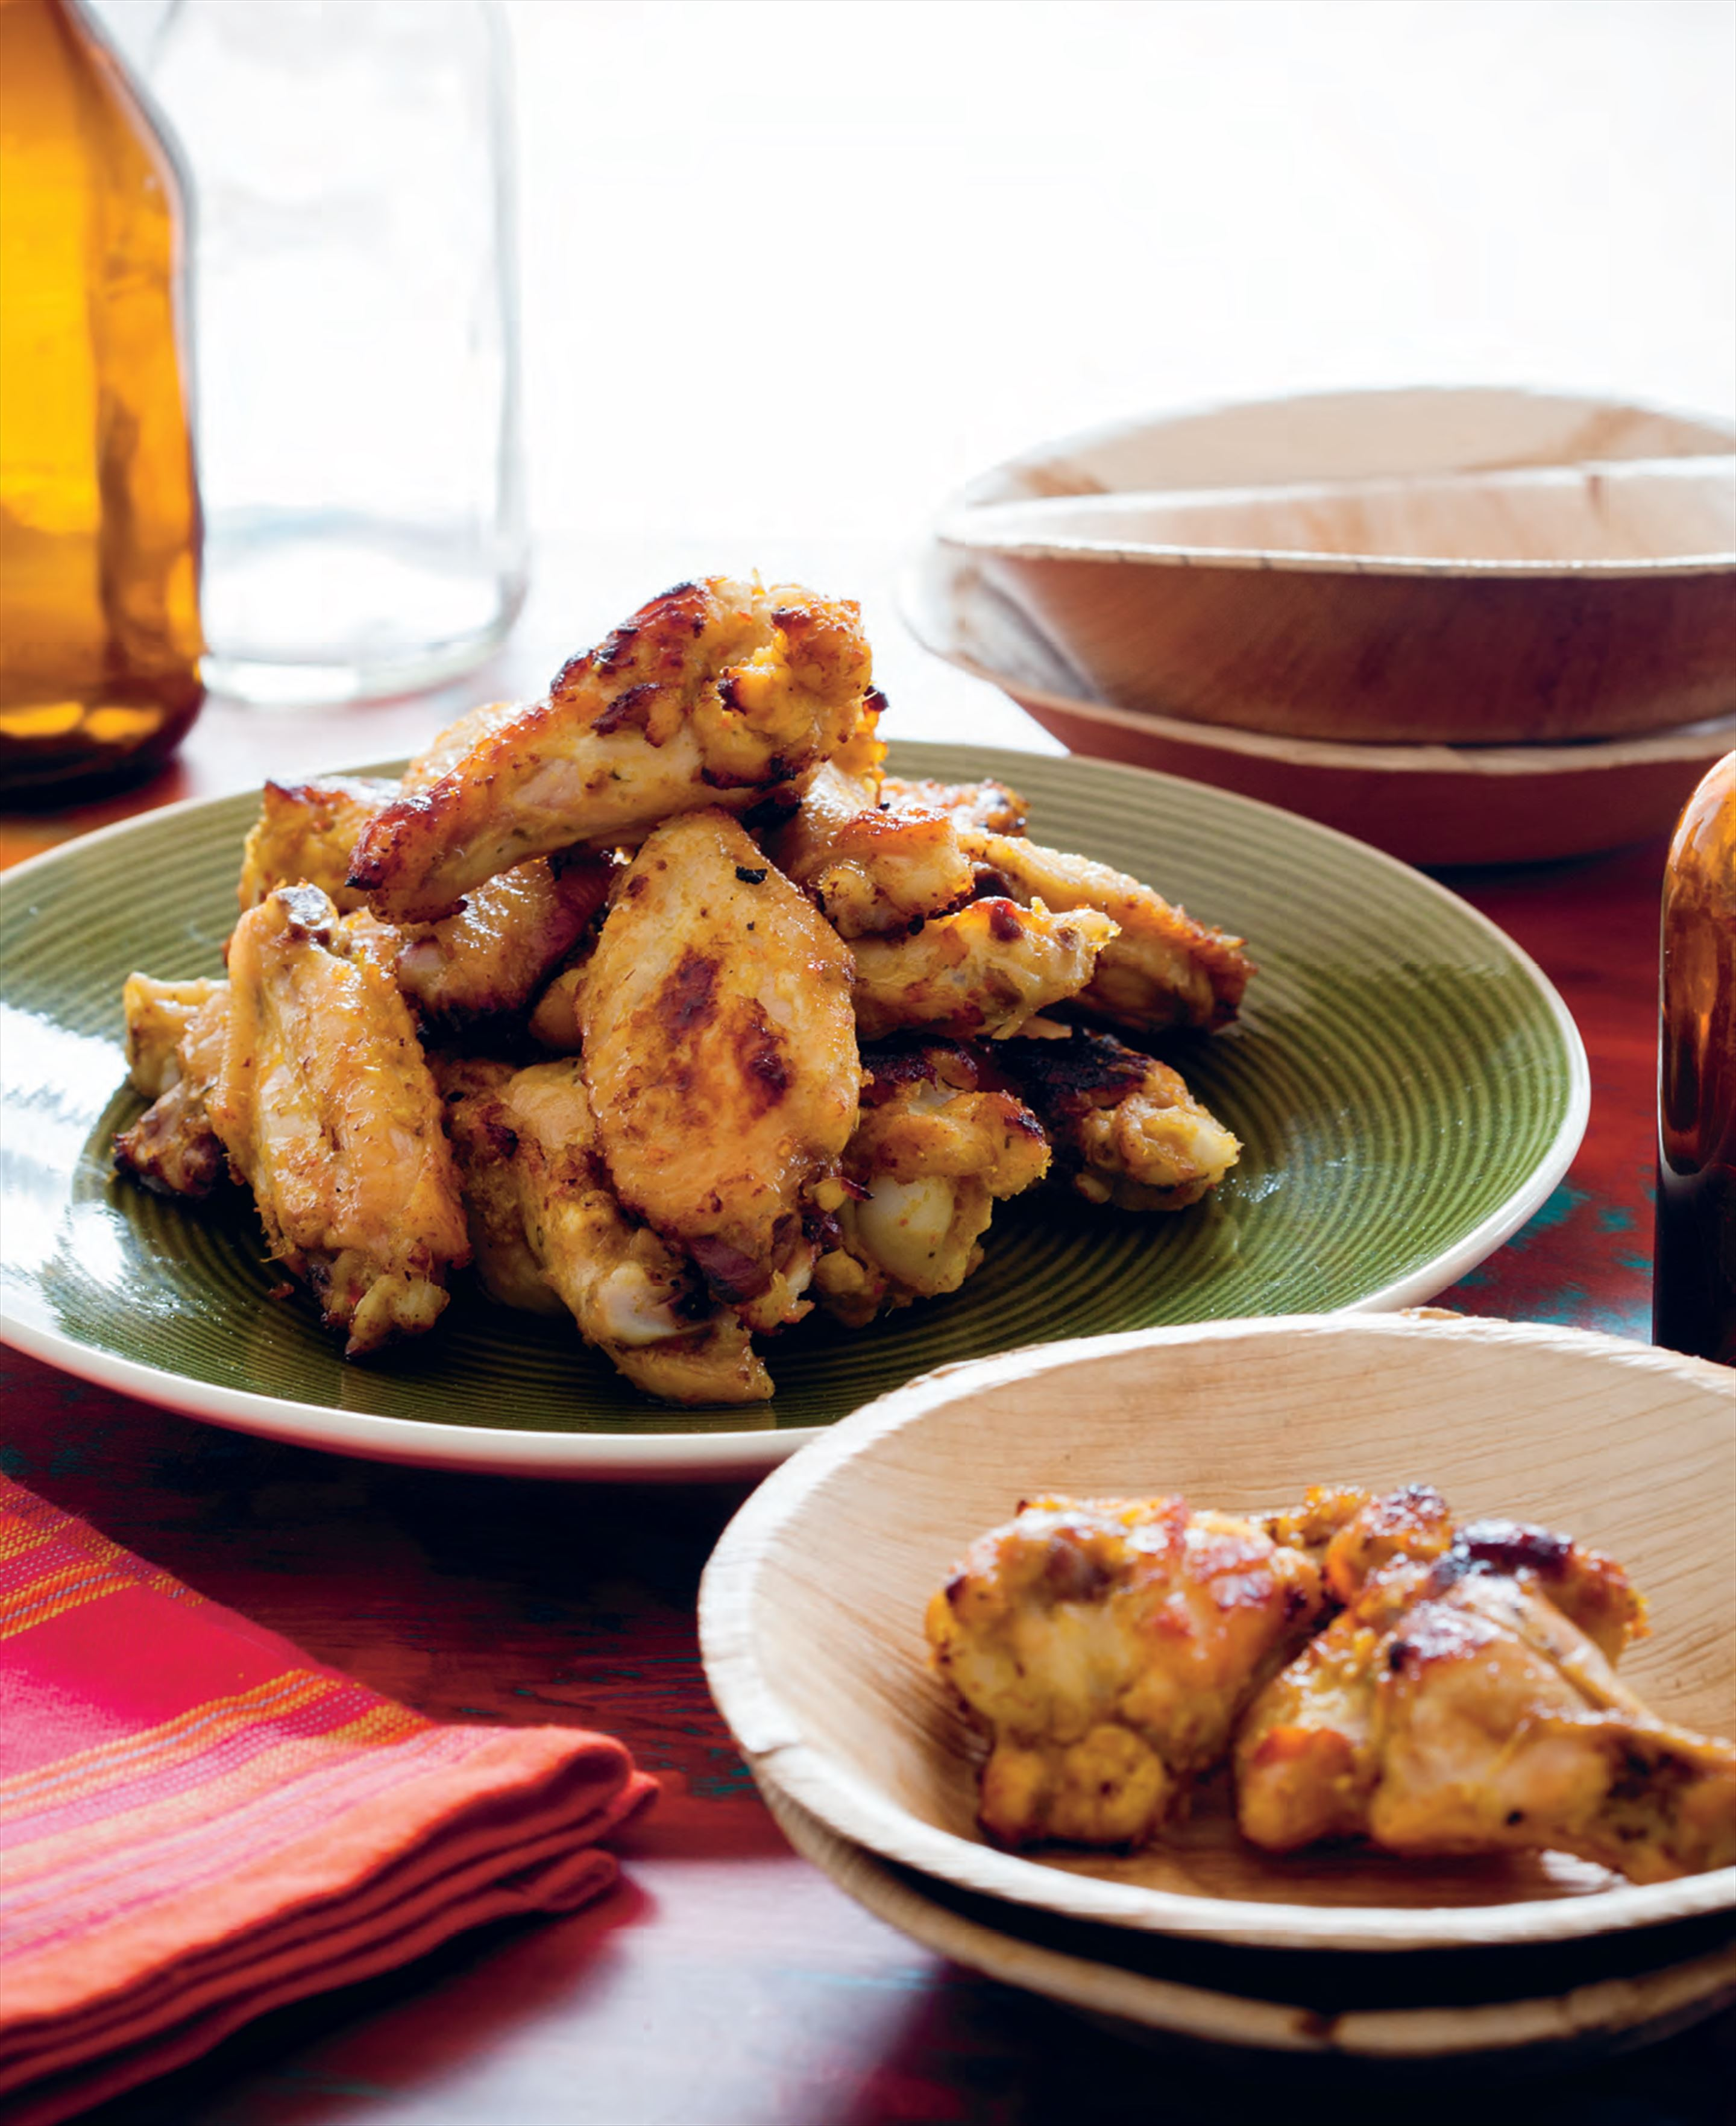 Lemongrass chicken wings